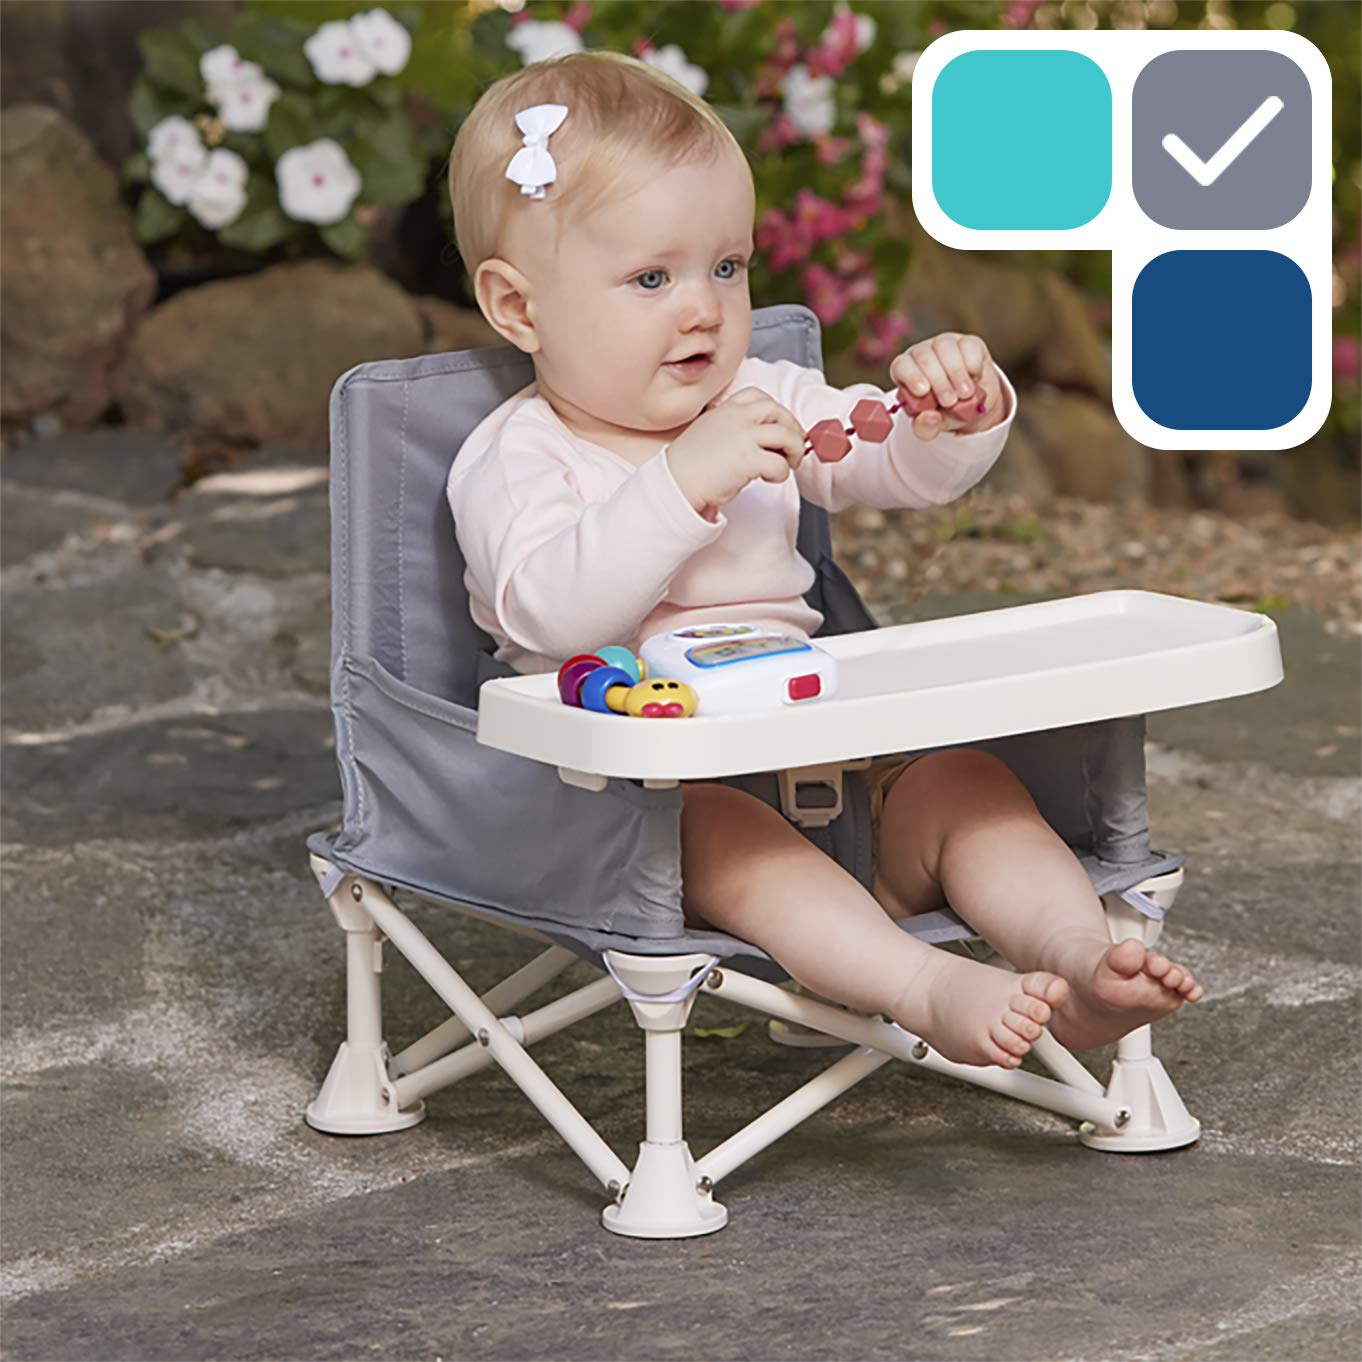 hiccapop Omniboost Travel Booster Seat with Tray for Baby | Folding Portable High Chair for Eating, Camping, Beach, Lawn, Grandma's | Tip-Free Design Straps to Kitchen Chairs - Go-Anywhere High Chair by hiccapop